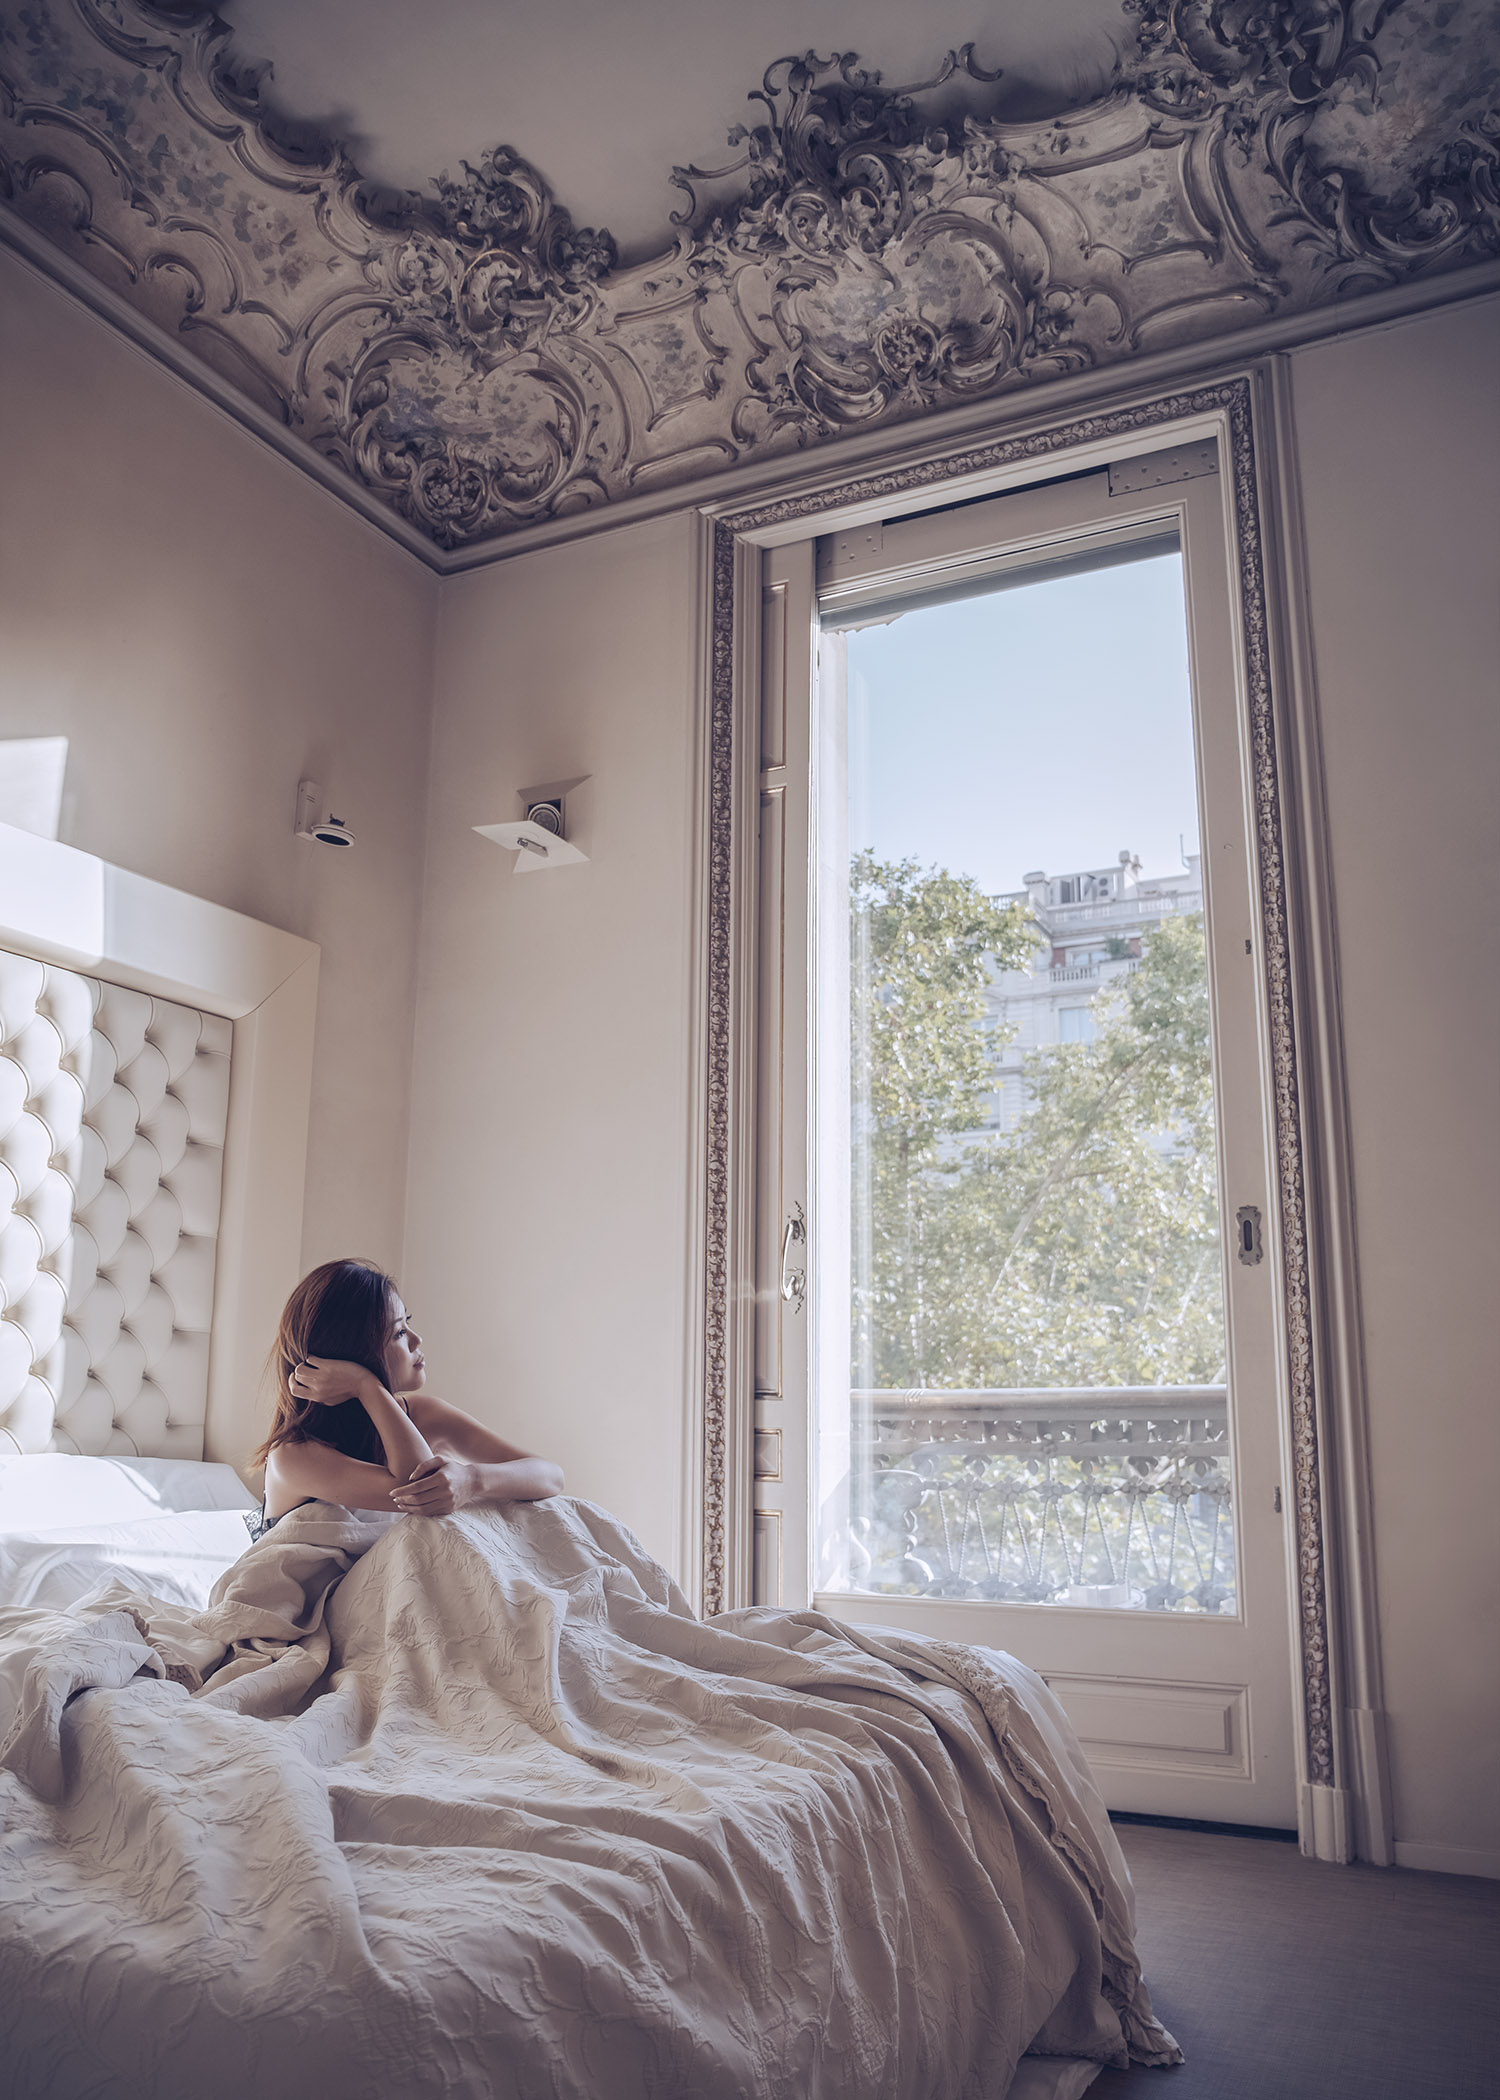 Lifestyle fashion travel blogger Jenny Tsang of Tsangtastic featuring El Palauet Living Barcelona Luxury Suite Hotel in Barcelona Spain